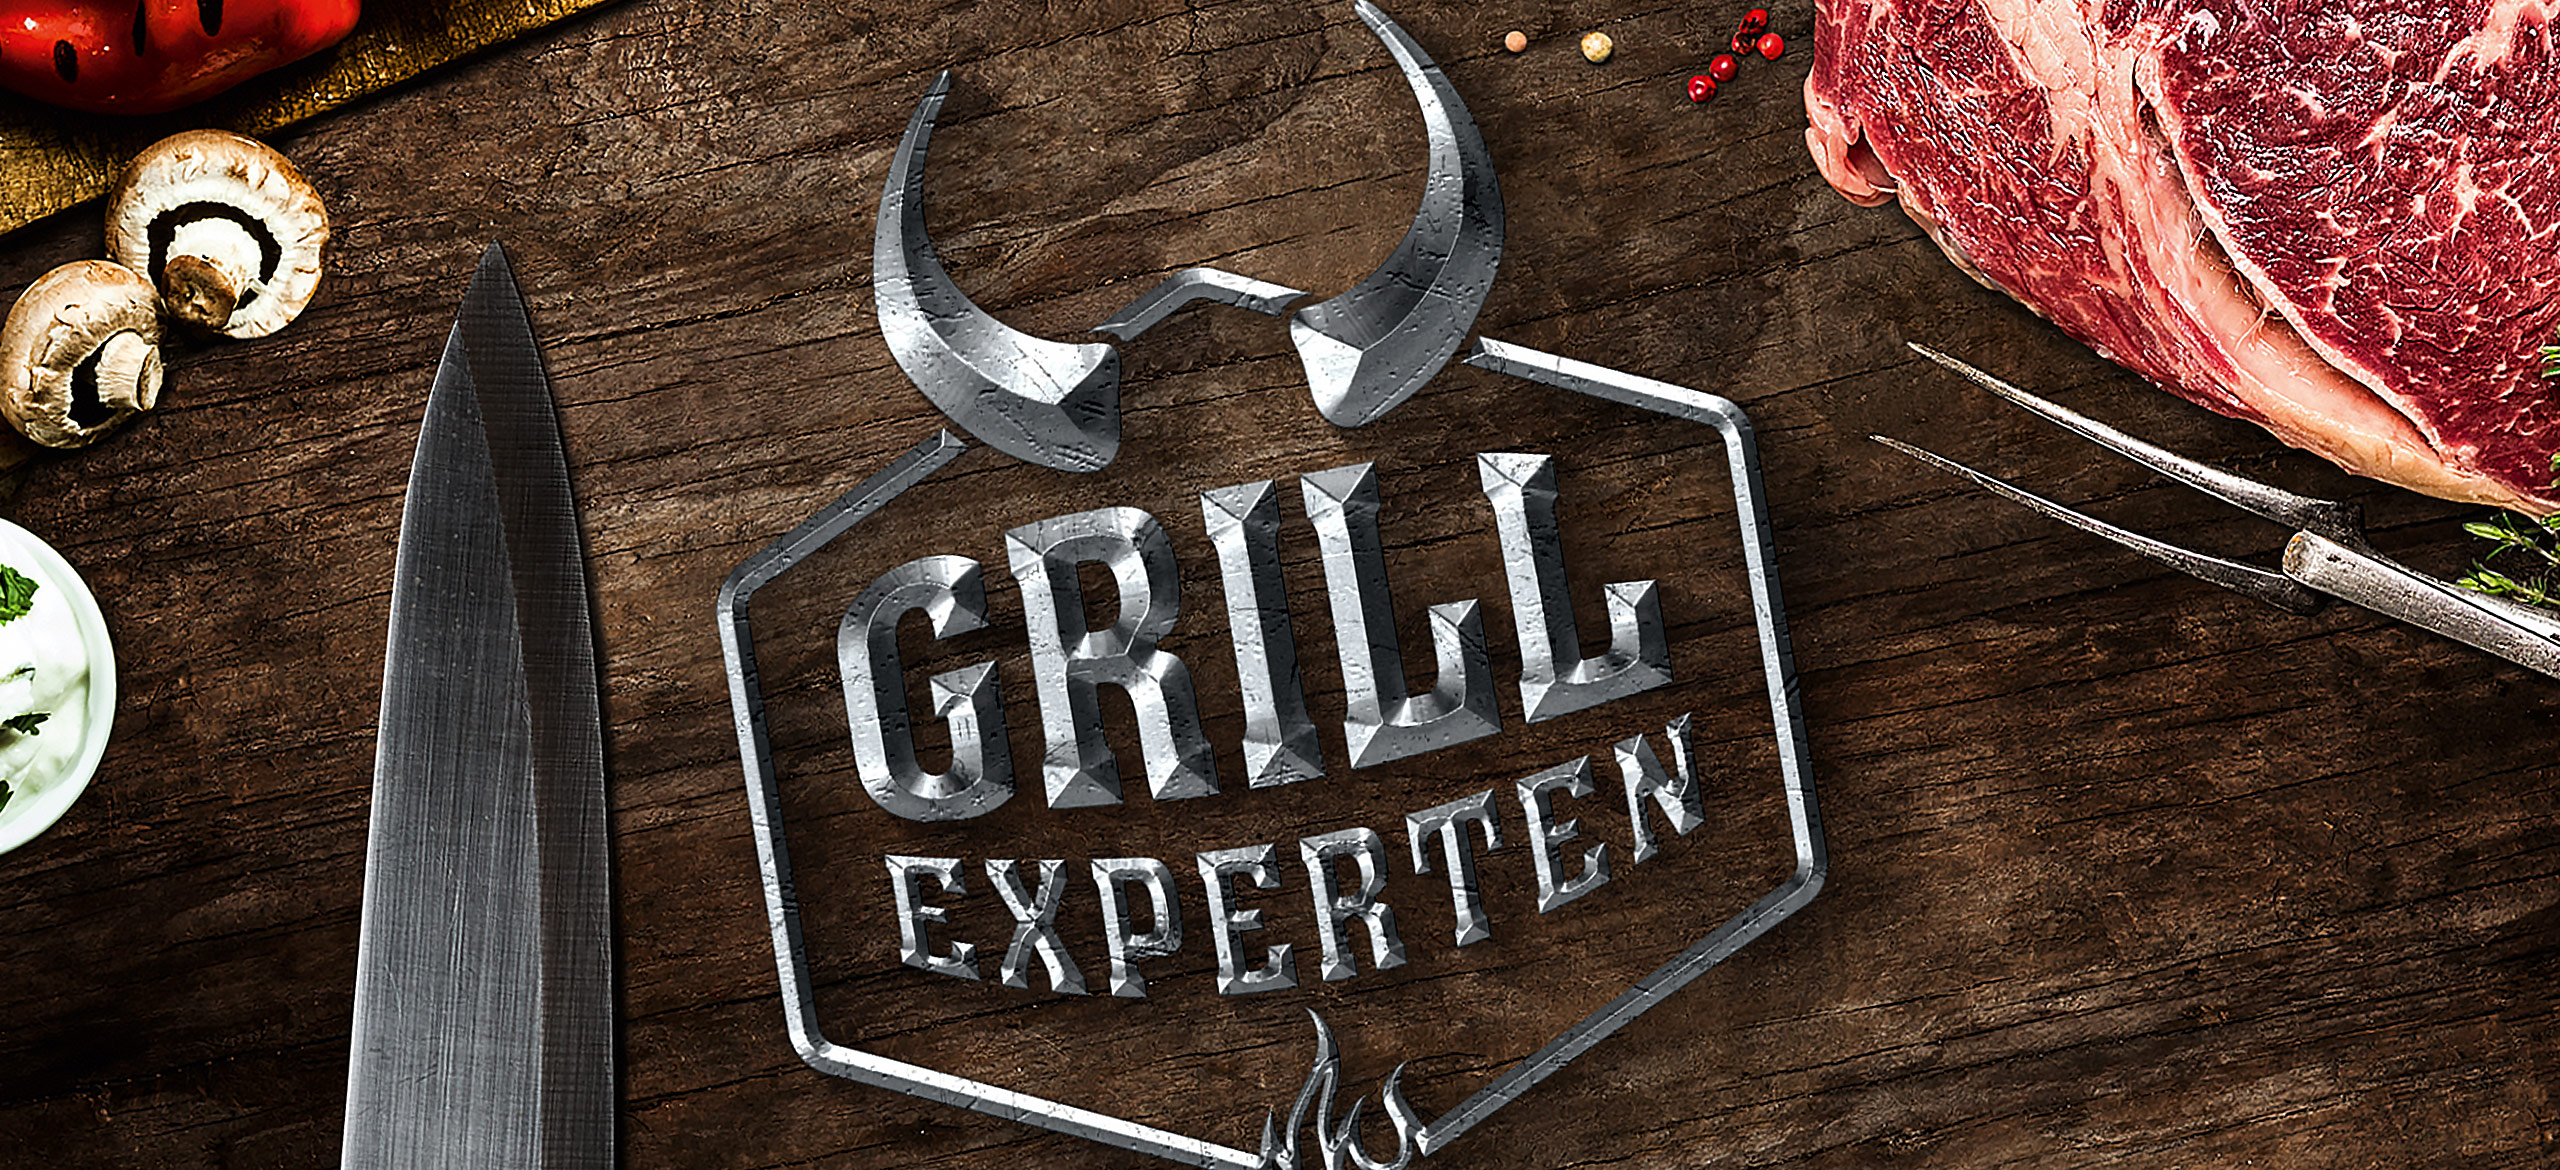 BORN TO GRILL!